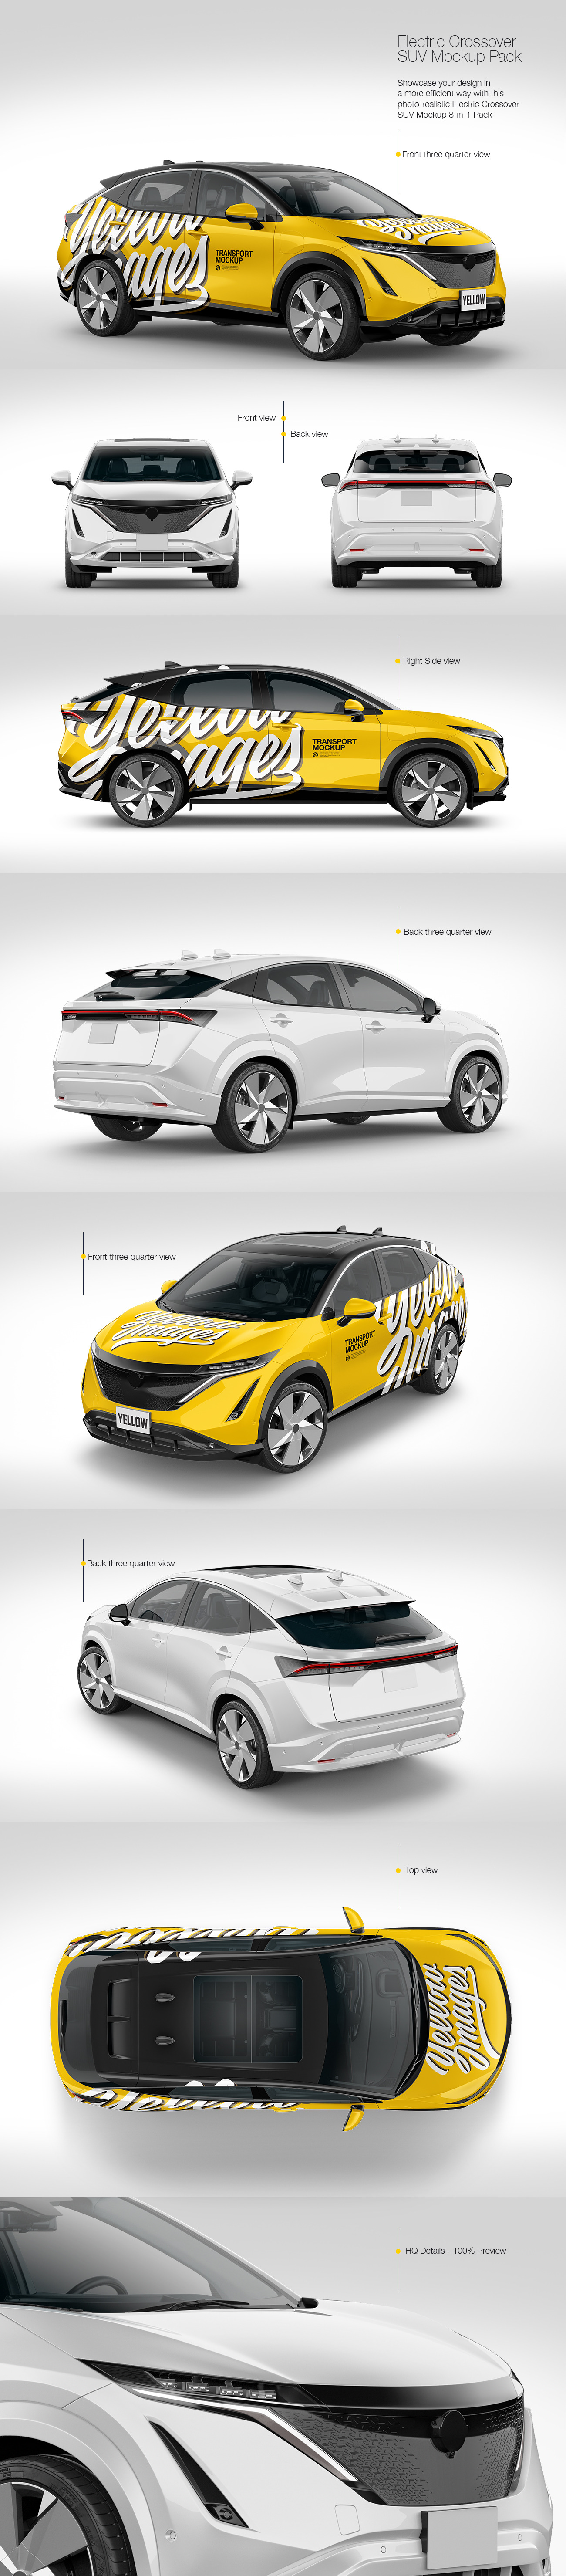 Electric Crossover SUV Mockup Pack